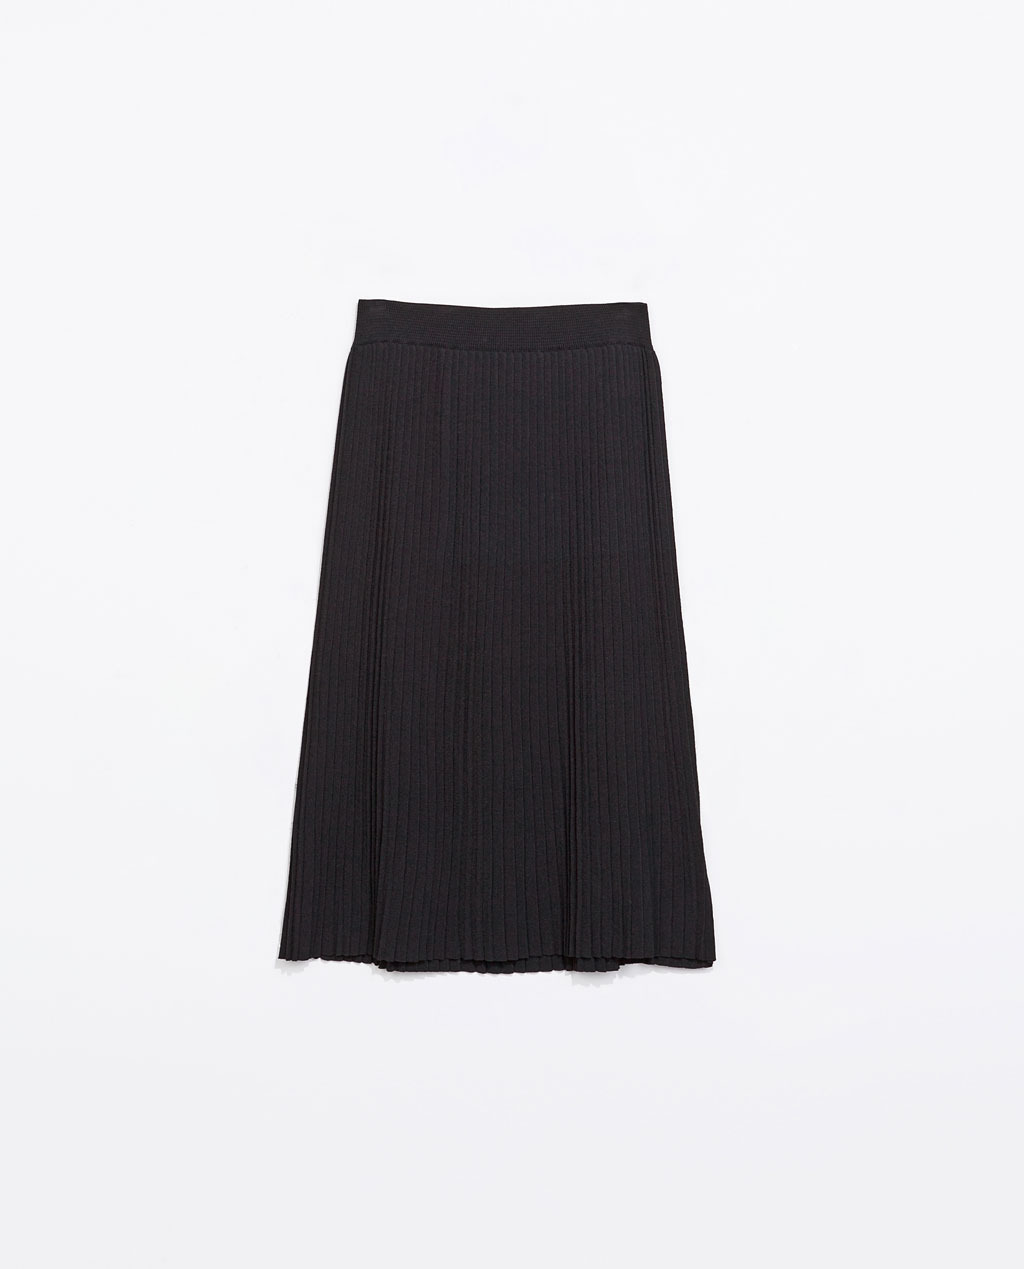 Knee Length Fine Pleat Skirt - pattern: plain; fit: loose/voluminous; style: pleated; waist: high rise; predominant colour: navy; occasions: casual, evening, work, creative work; length: on the knee; hip detail: adds bulk at the hips; pattern type: knitted - other; texture group: other - light to midweight; trends: powerful pleats; season: s/s 2014